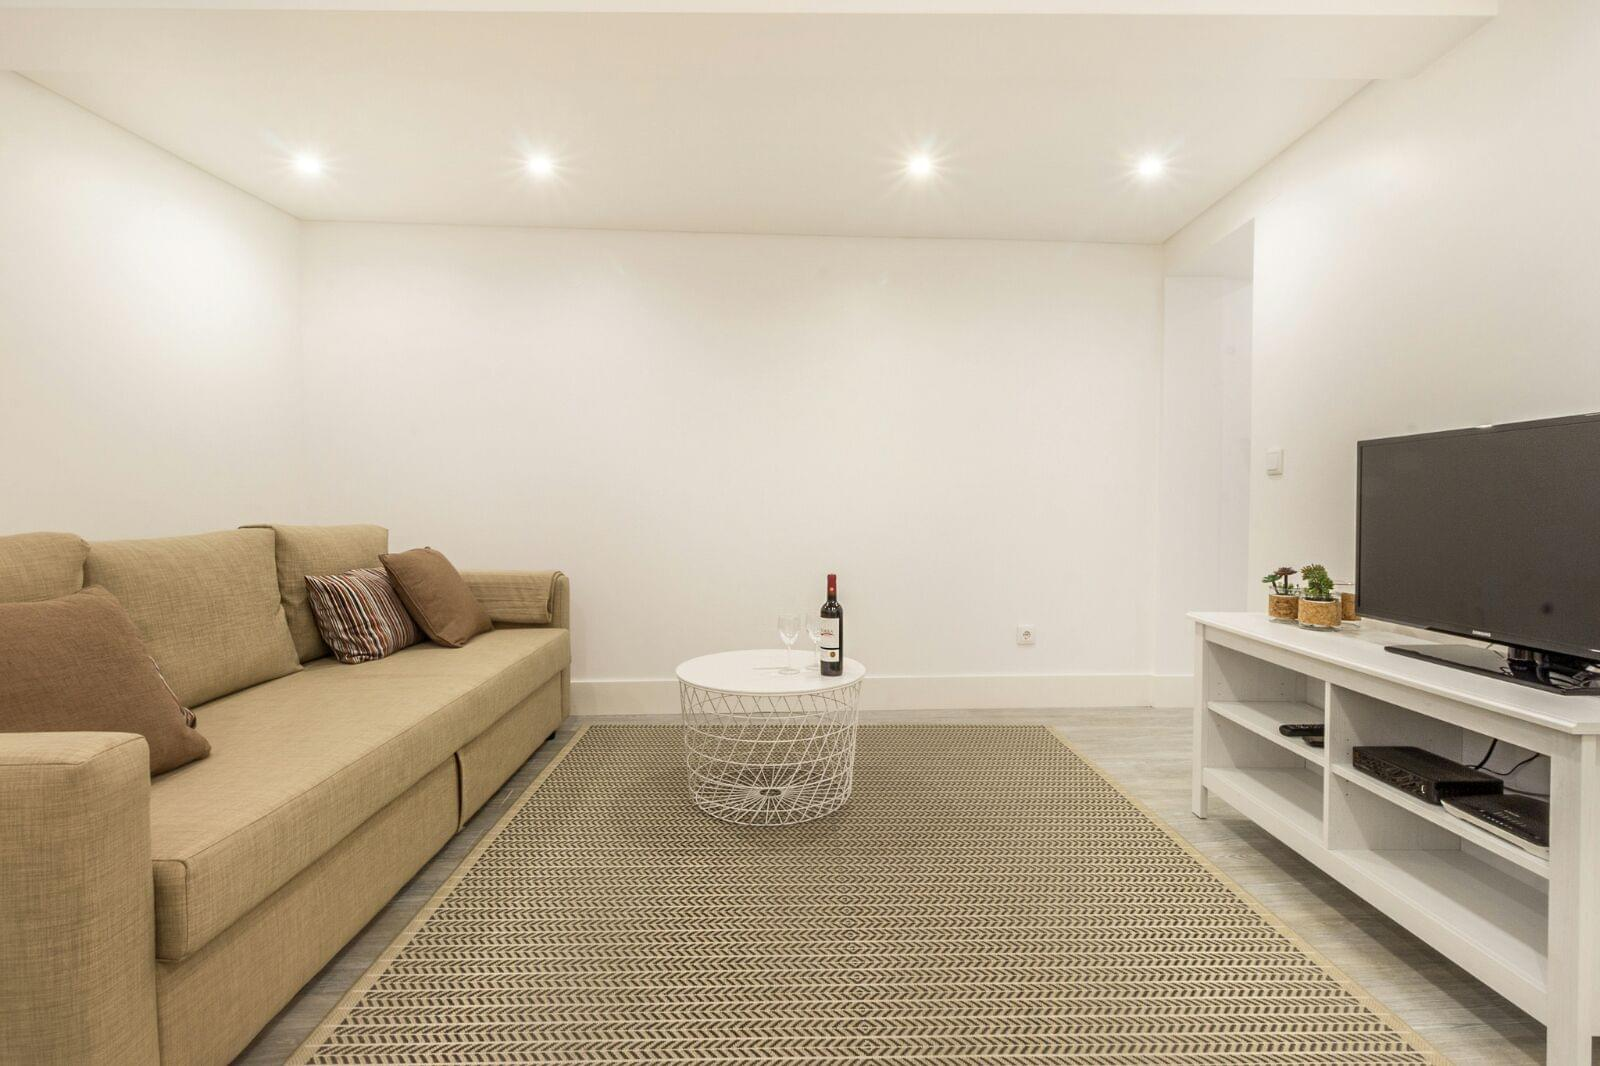 1 bedroom apartment with furniture